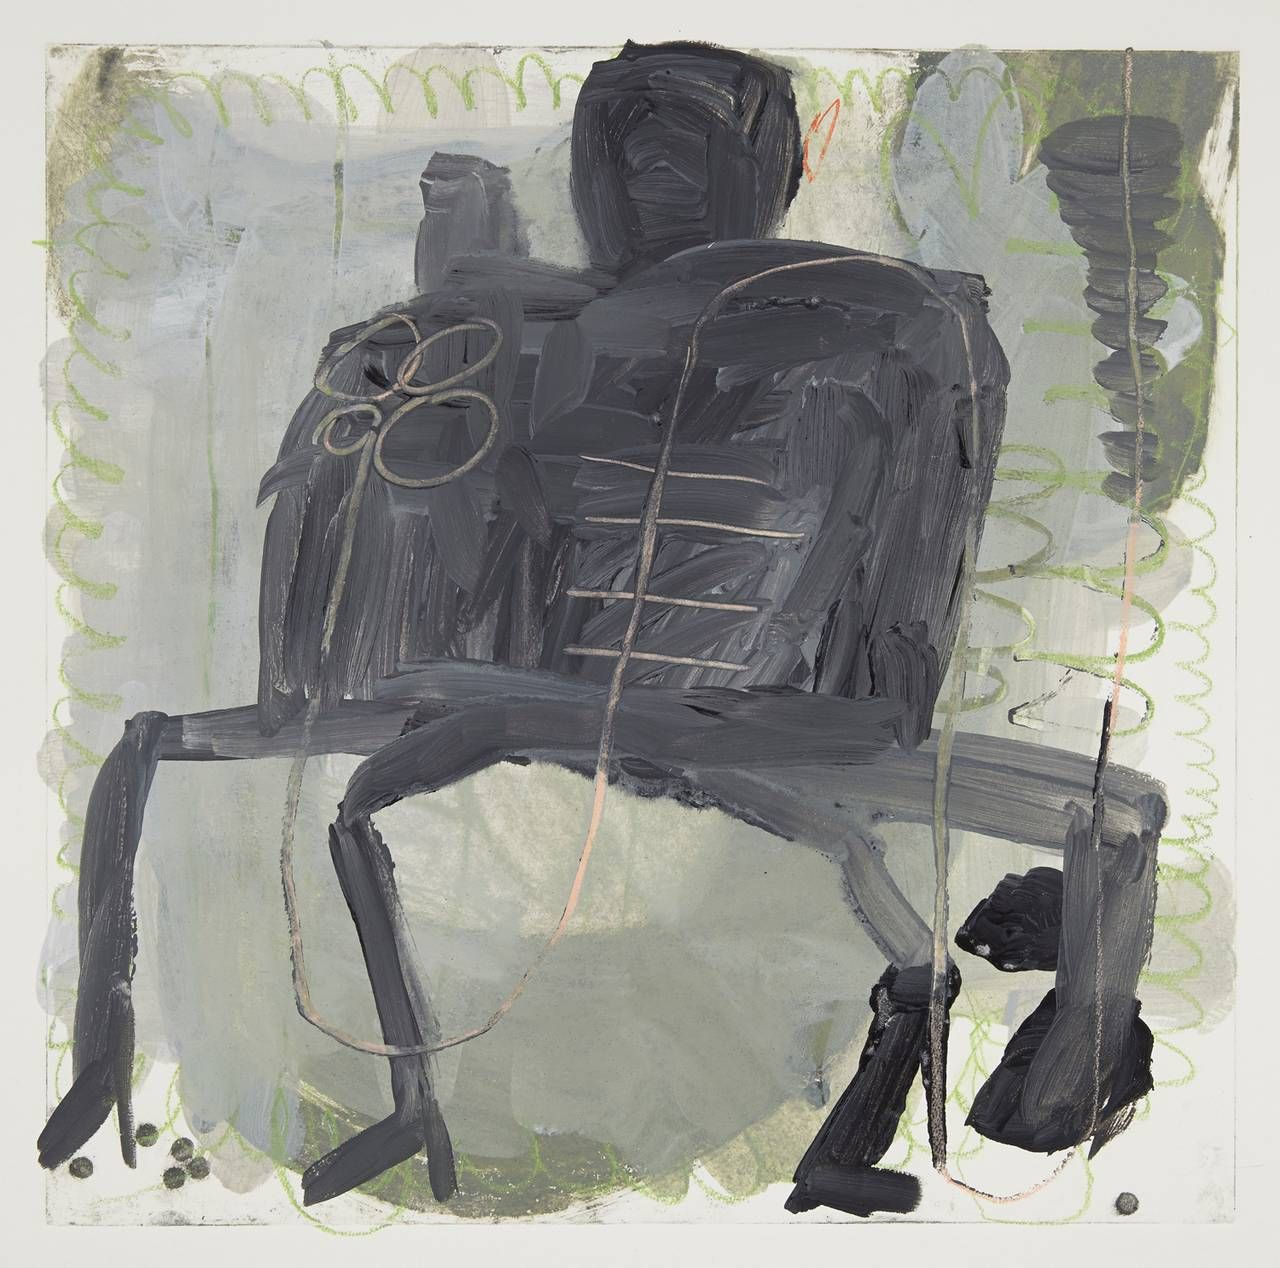 Roxanne Faber Savage - Couple on Bench   From a unique collection of mixed media at https://www.1stdibs.com/art/mixed-media/